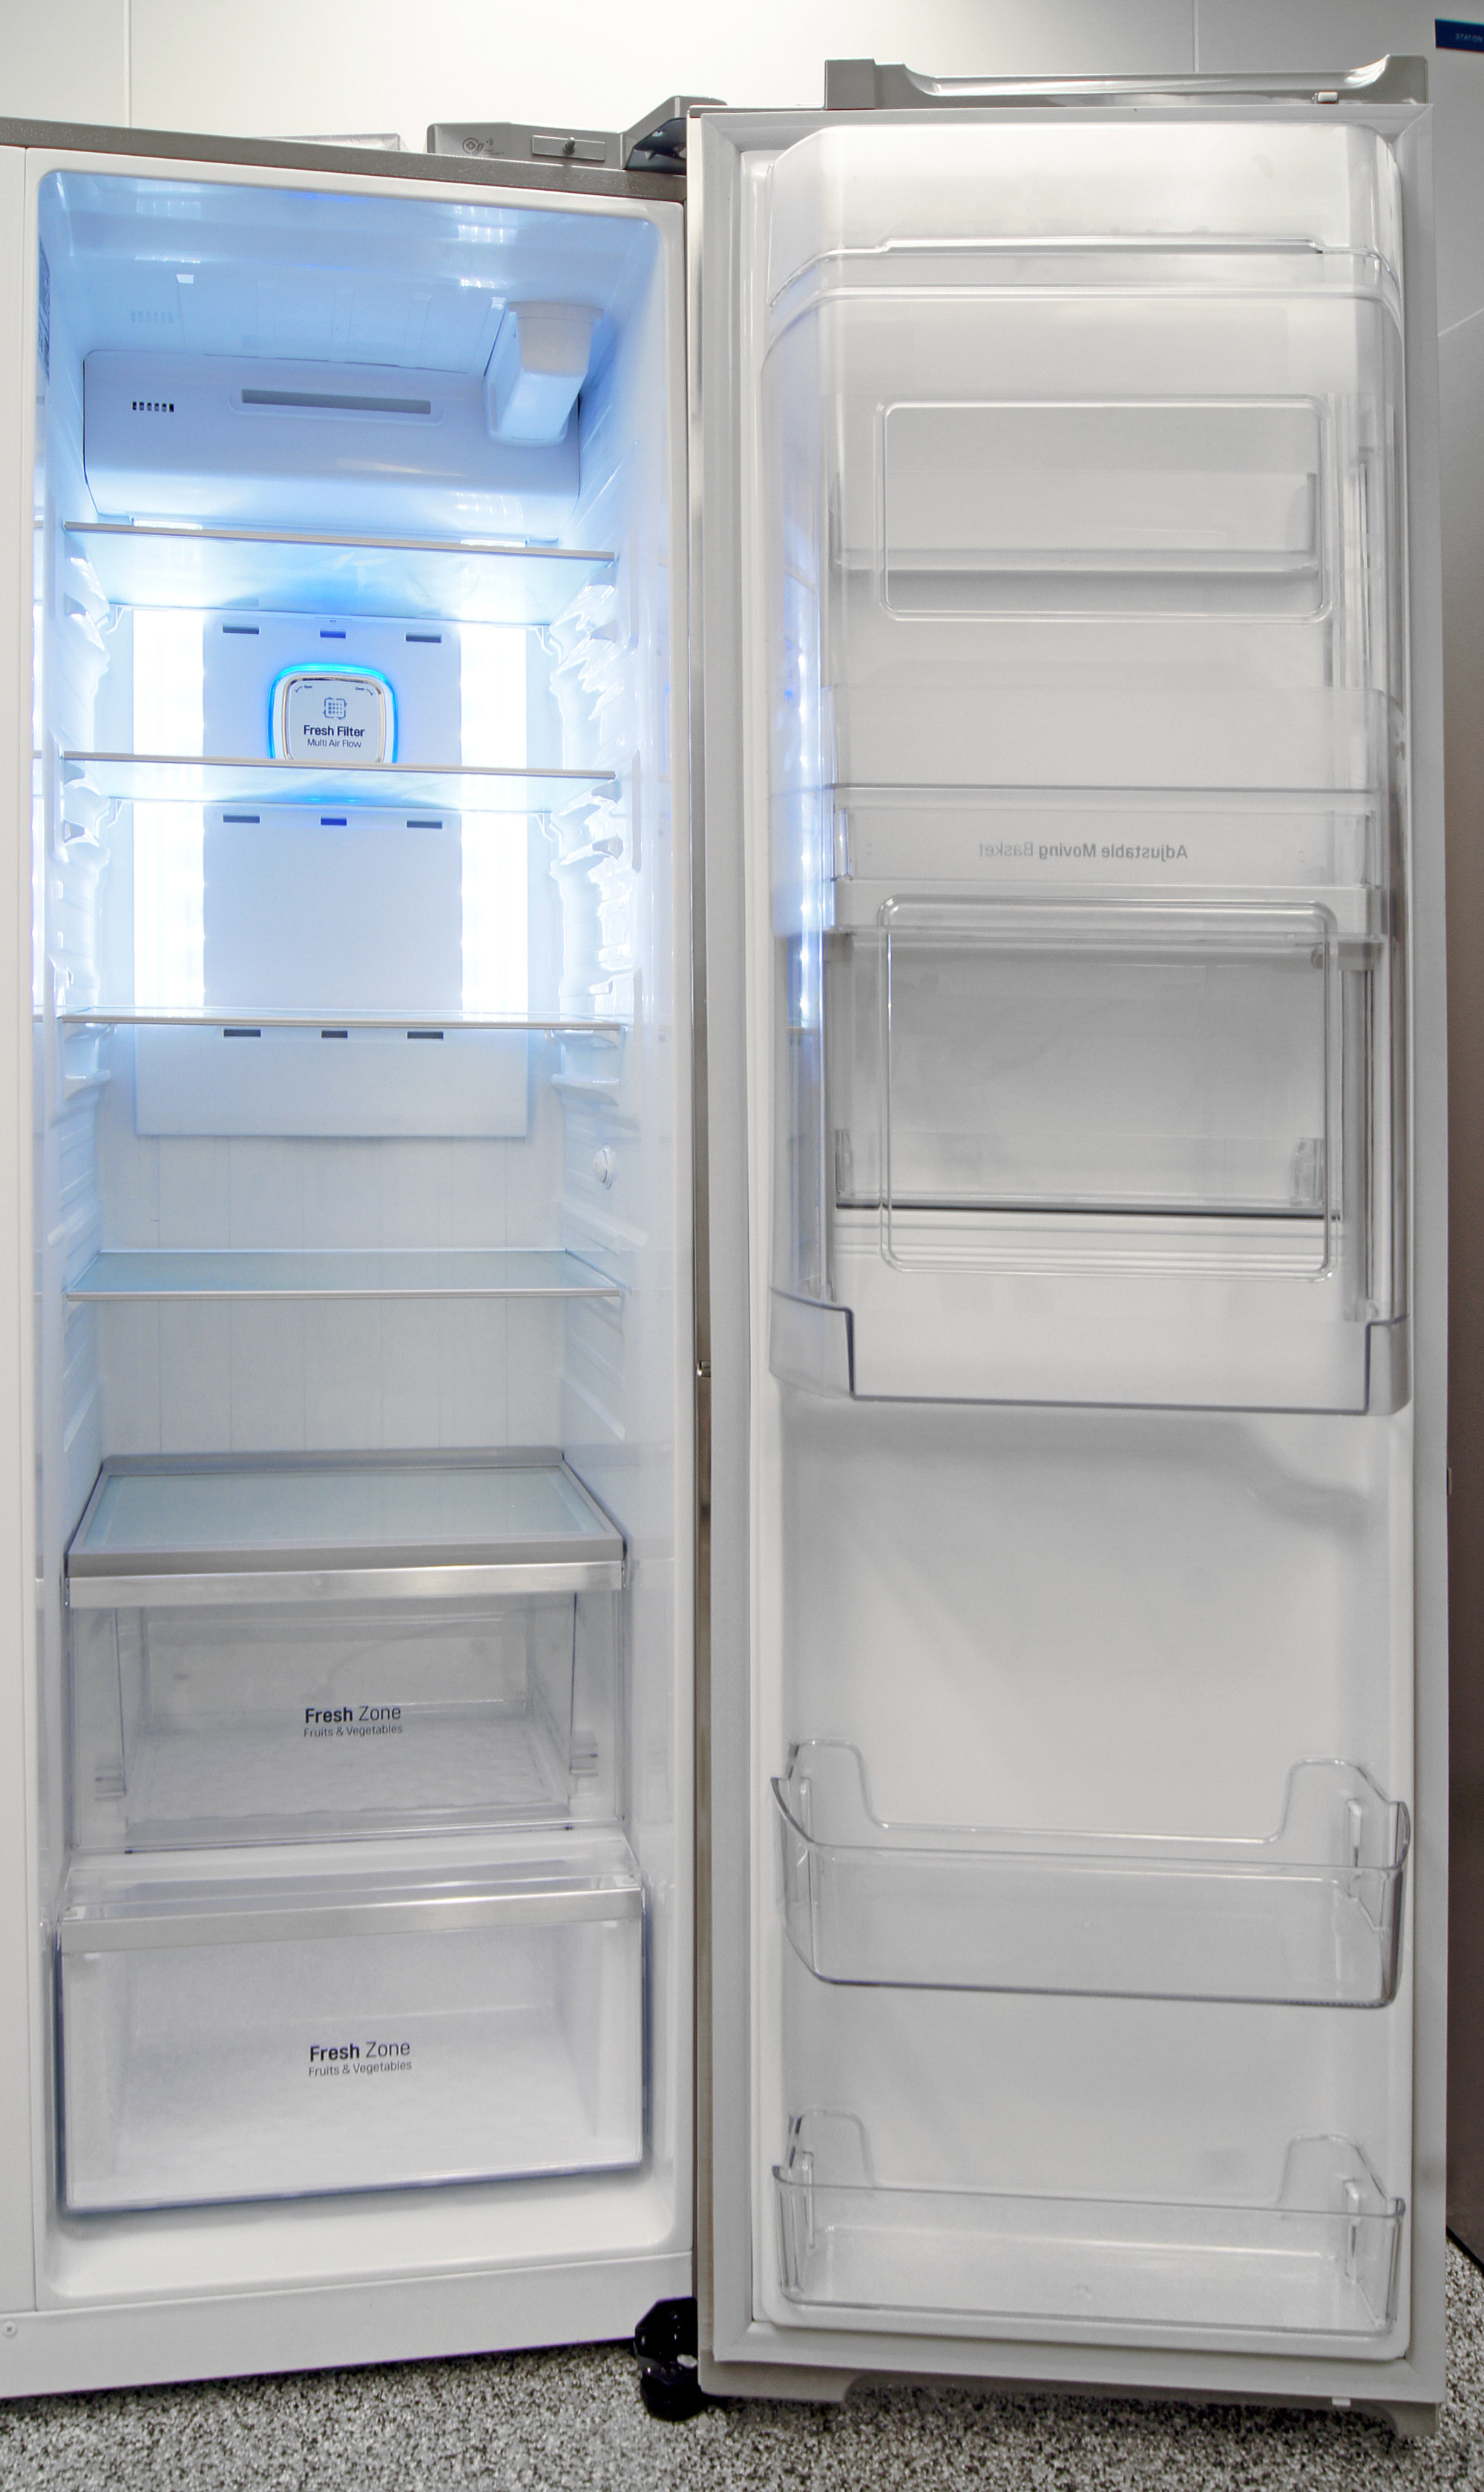 The plastic wall around the door-in-door compartment can be tough to navigate, but the rest of the LG LSC22991ST's fridge is very accessible.